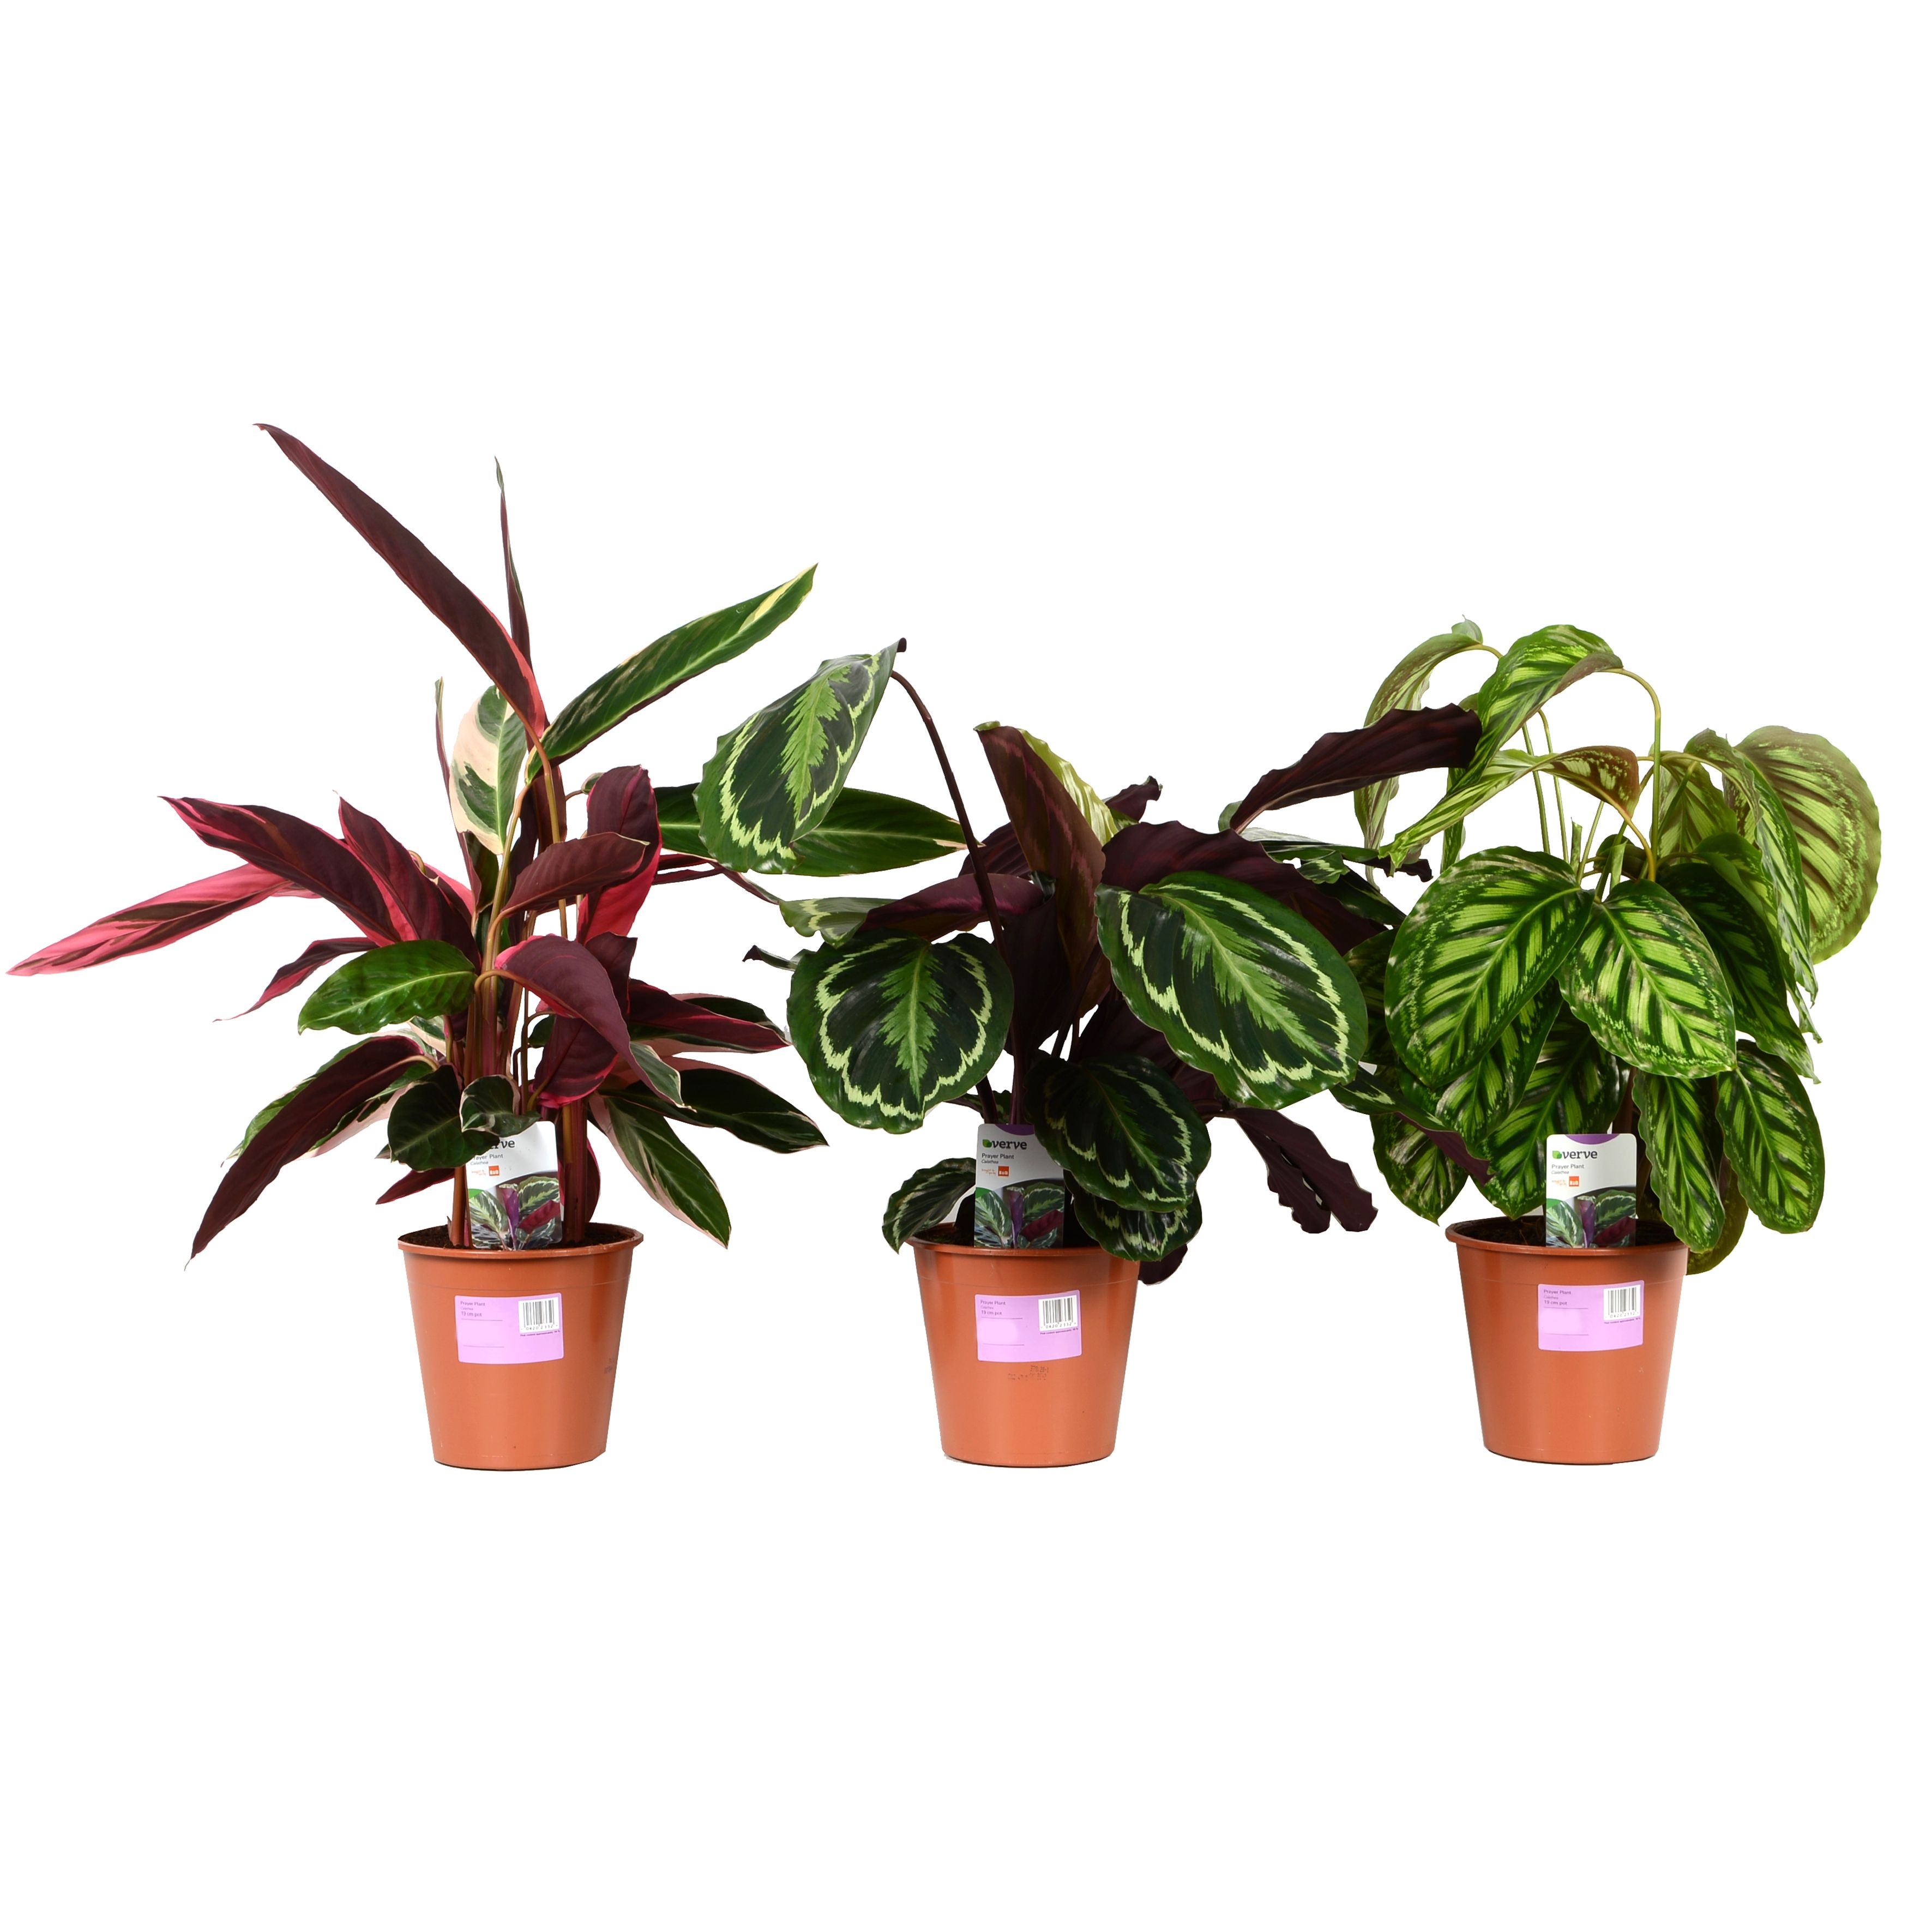 Verve Prayer Plant In Plastic Pot Departments Diy At B Amp Q